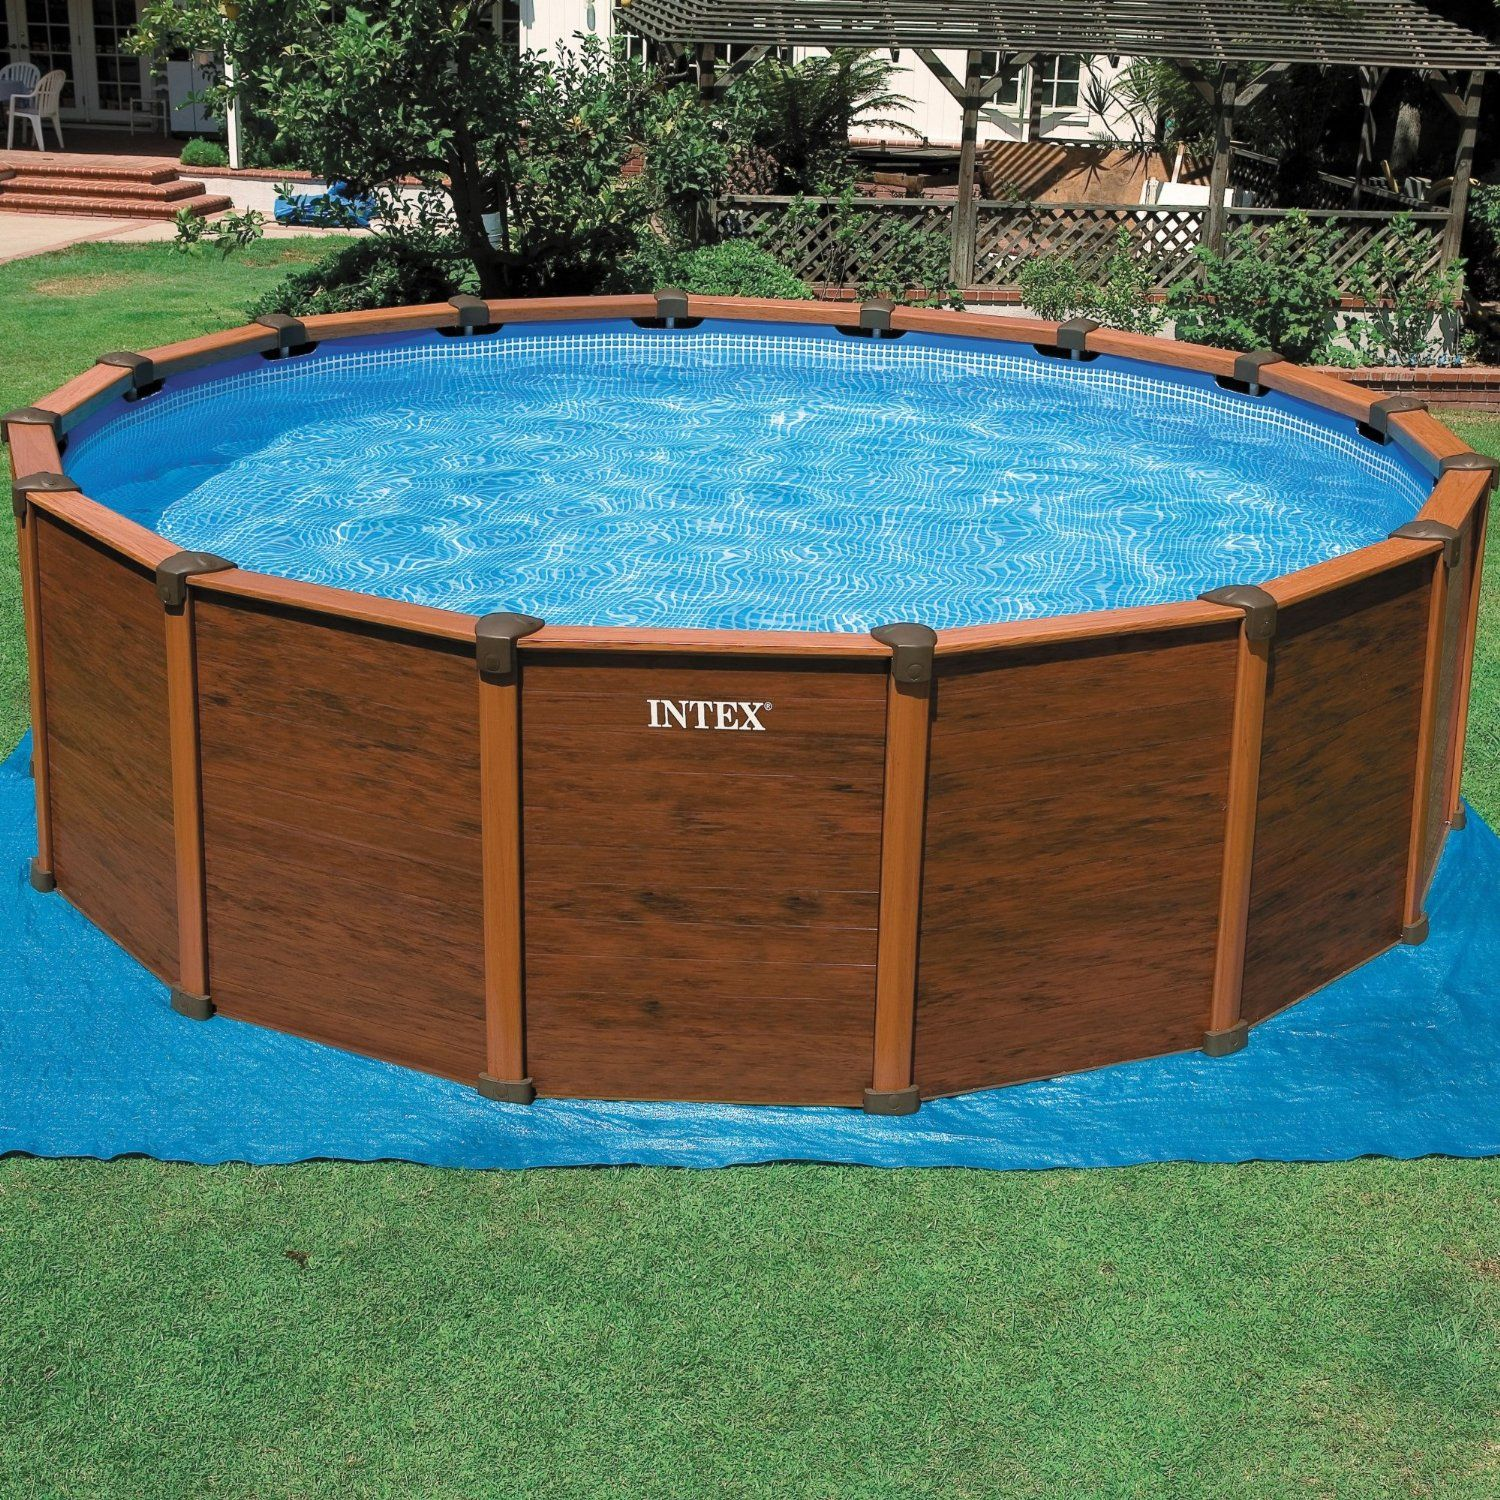 Sandfilteranlage Pool Toom Above Ground Swimming Pools Target Pools Pools Ideas In 2019